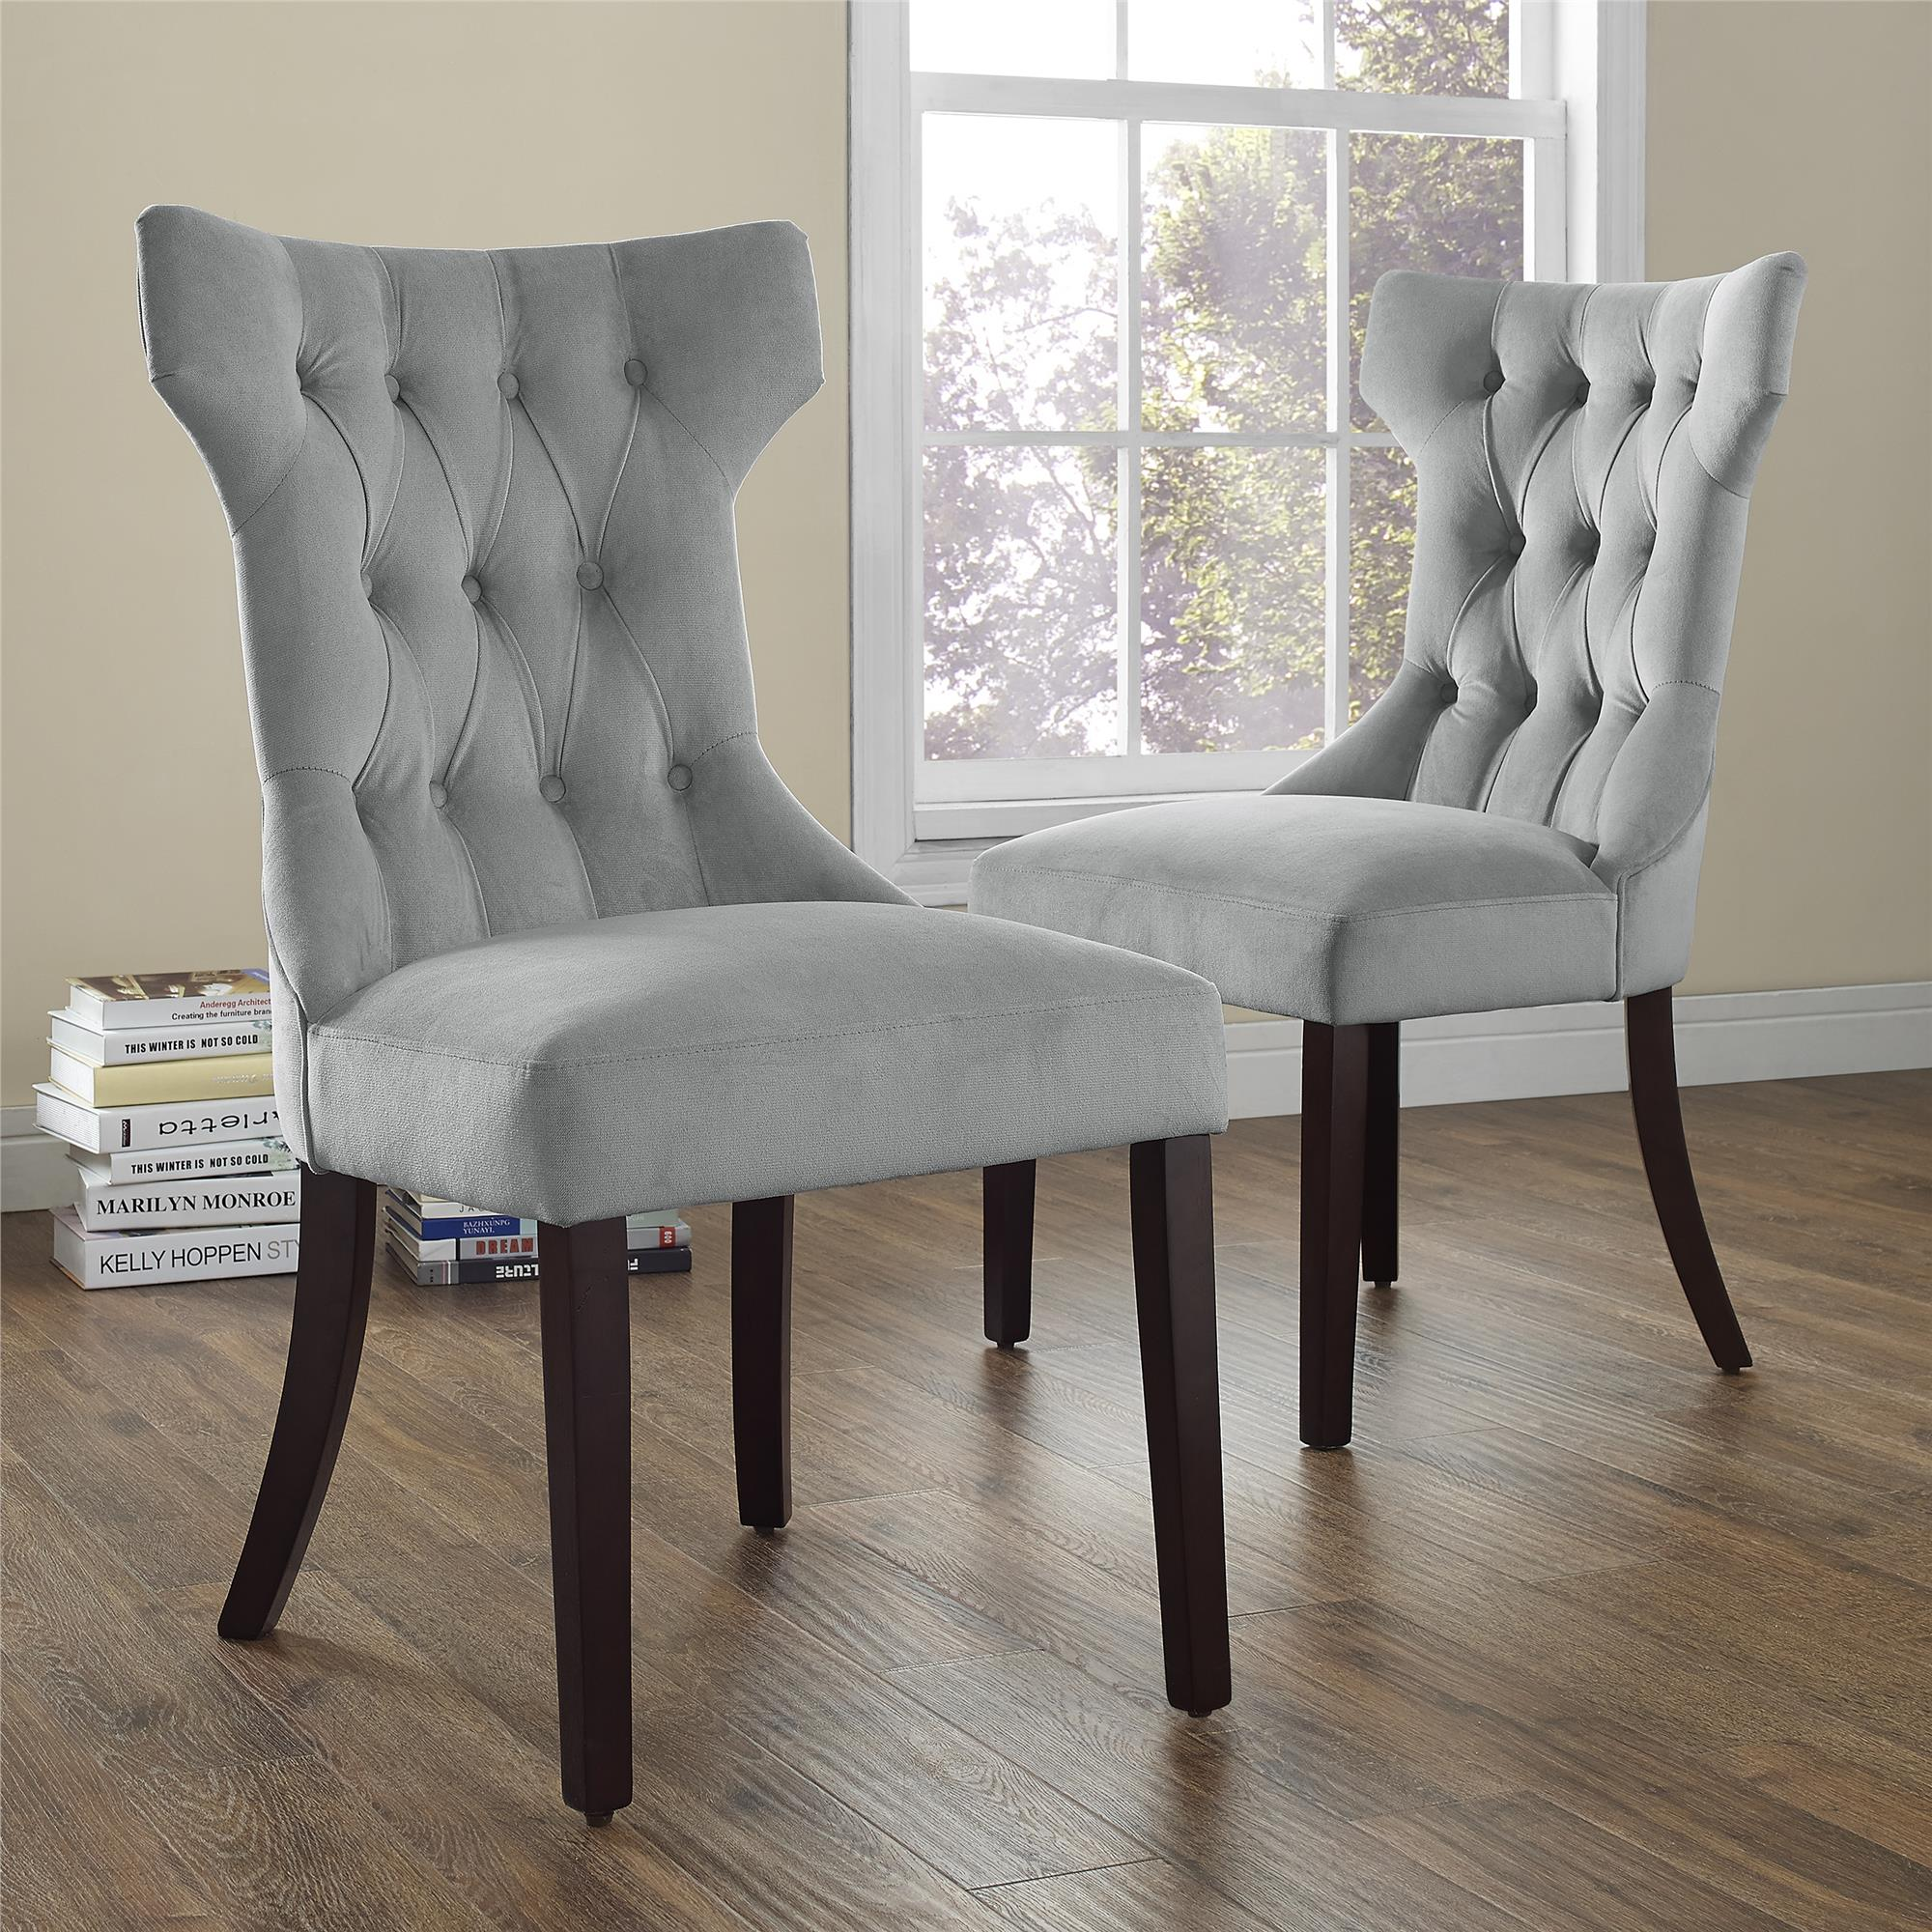 Linen Dining Chairs | Upholstered Kitchen Chairs | Tufted Dining Chair